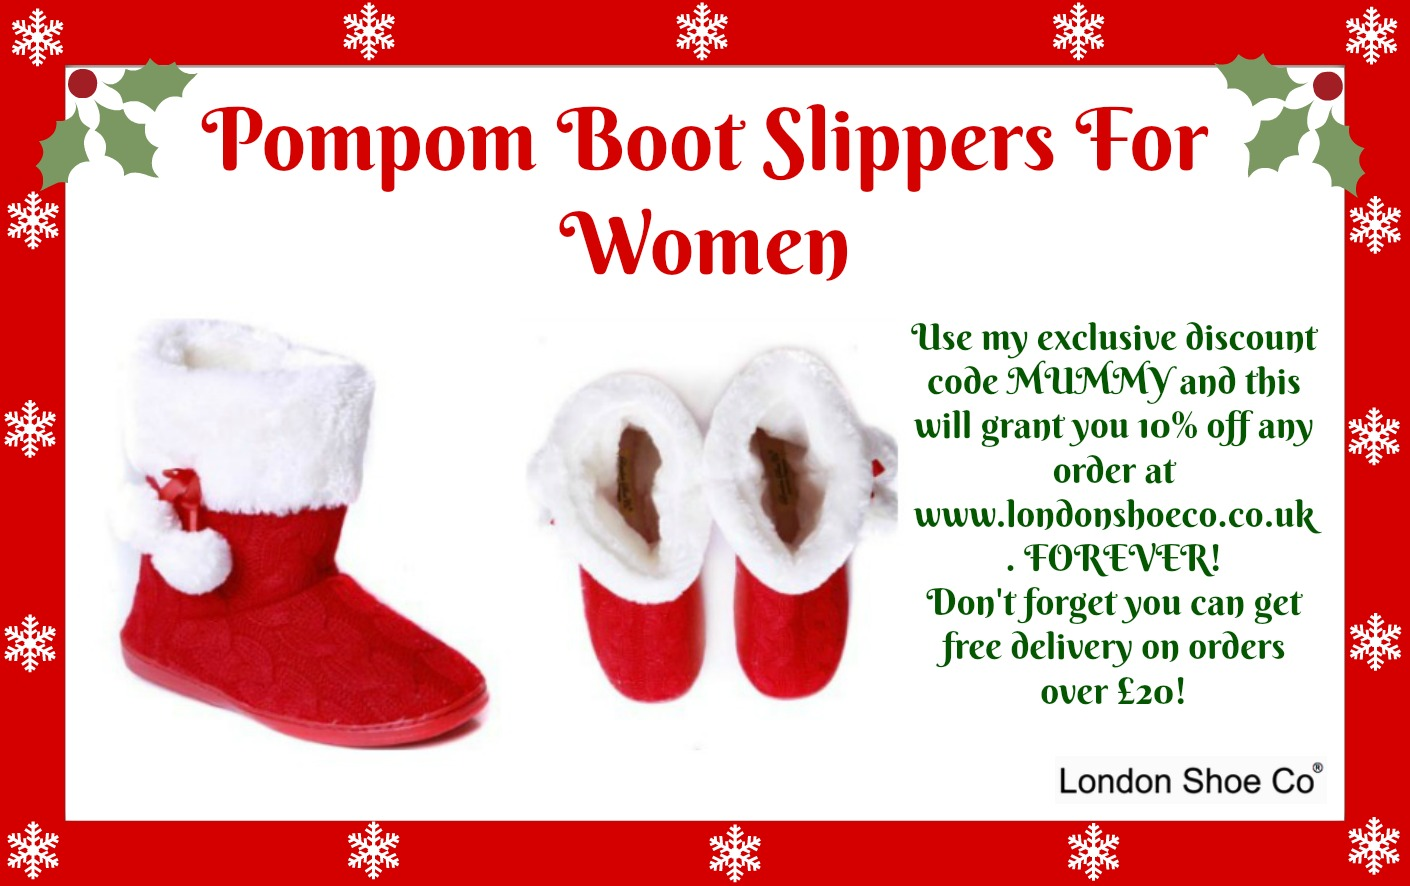 pompom-boot-slippers-for-women